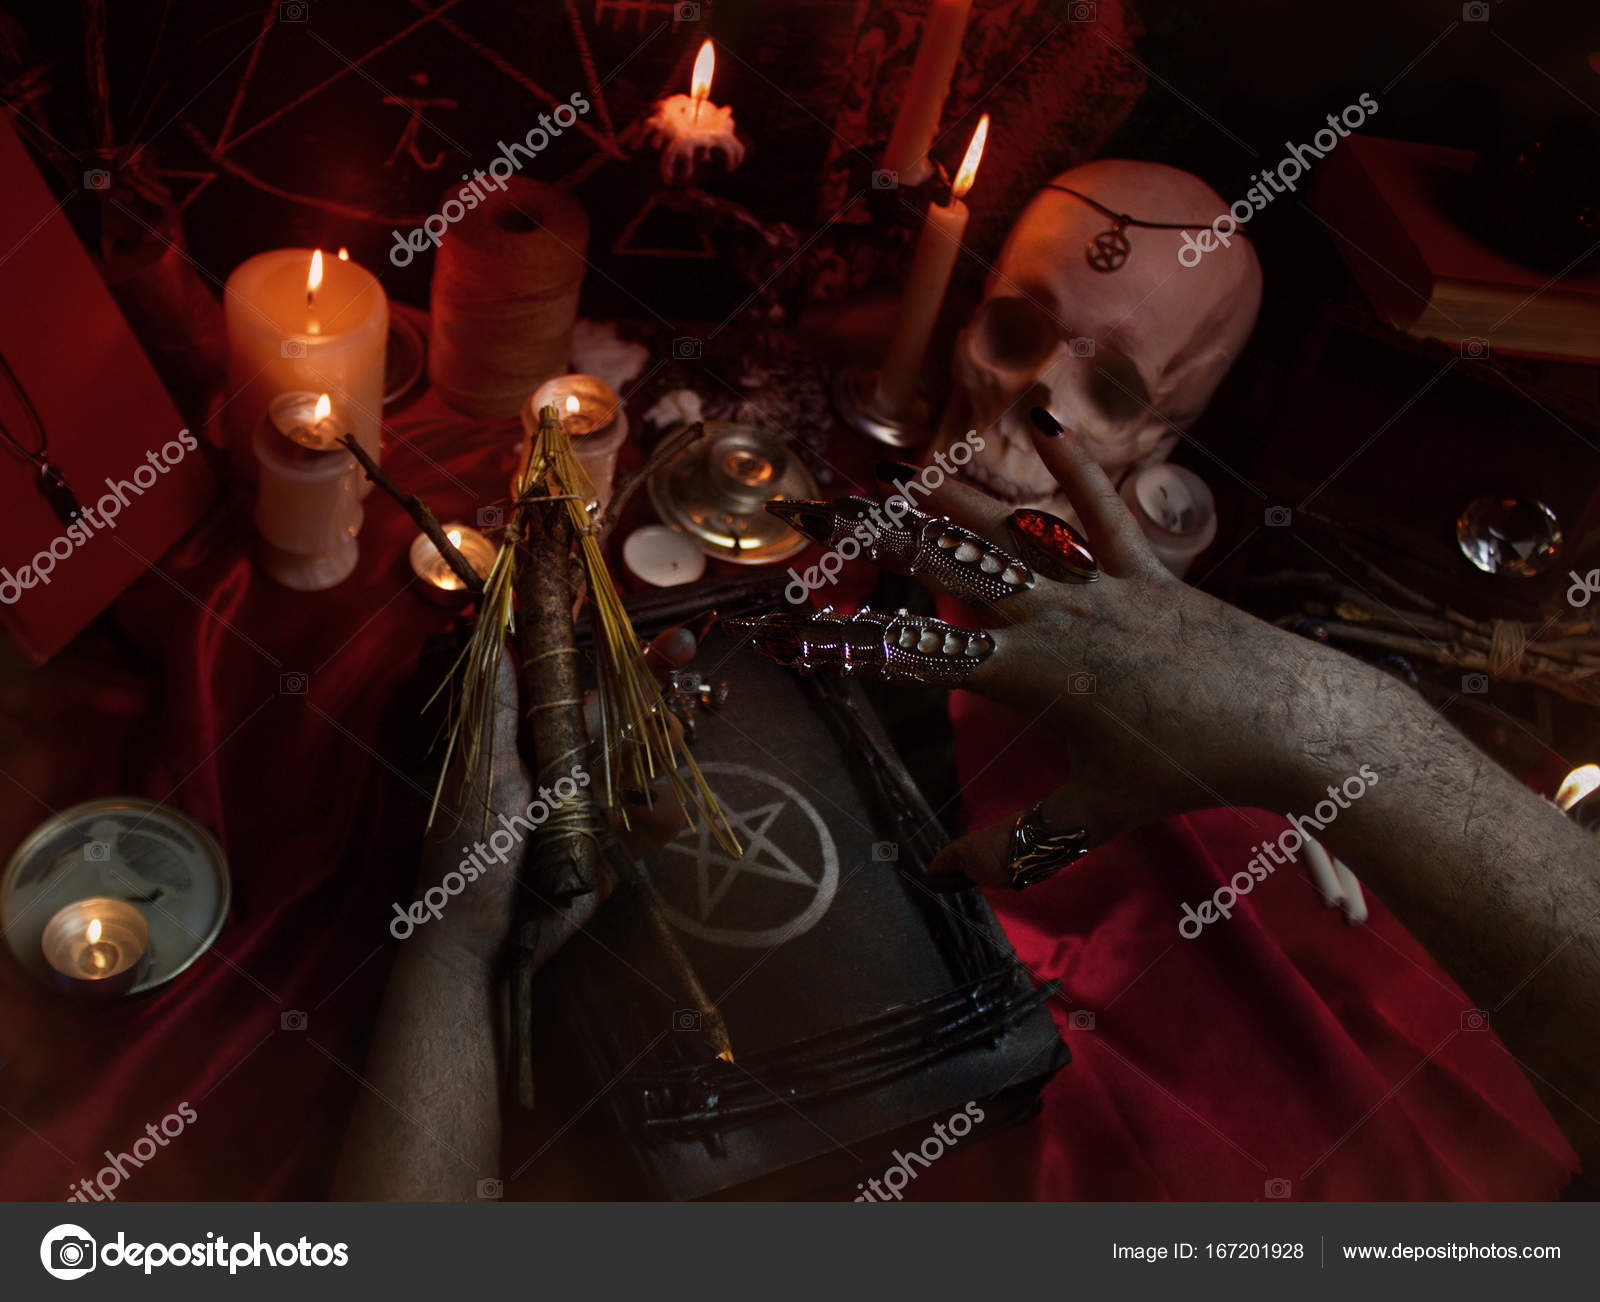 Pictures: ritual | Black magic ritual with Voodoo doll